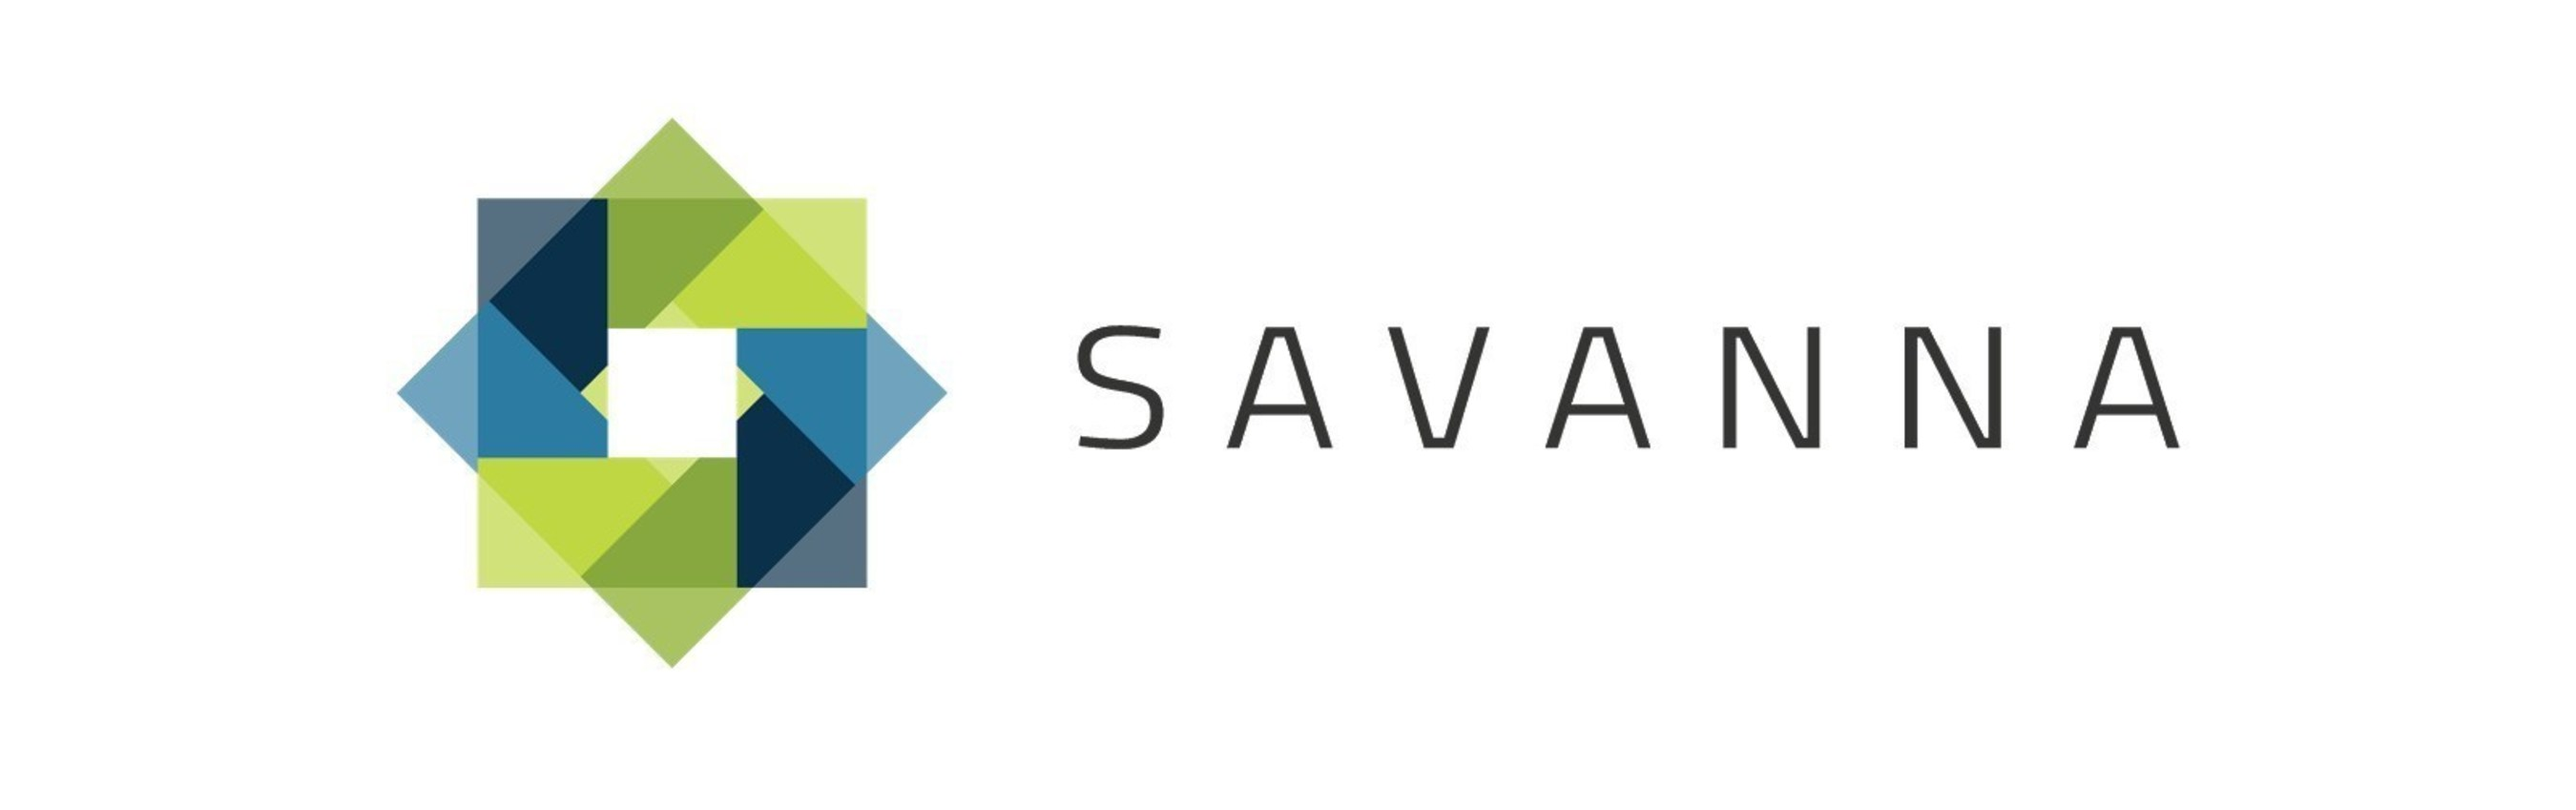 Savanna 4.7, a product of Thetus Corporation. For more information, please visit www.thetus.com.